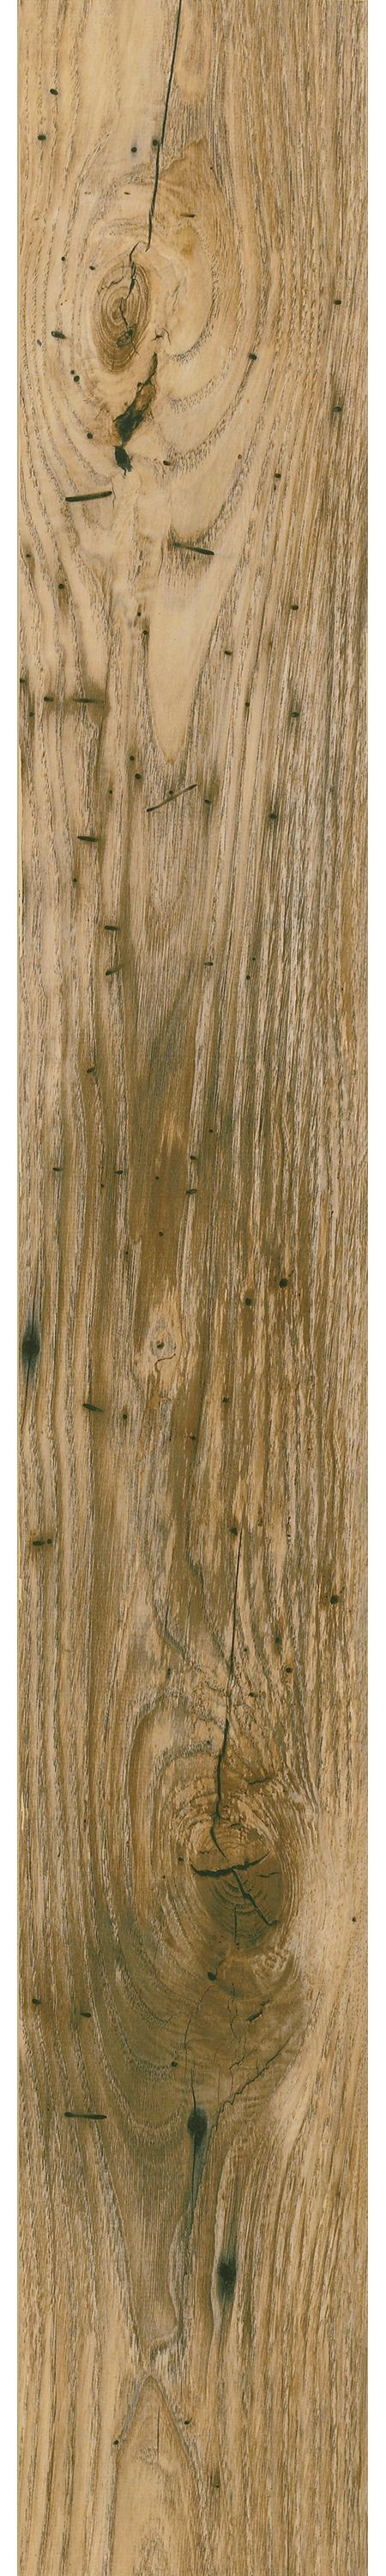 Armstrong Reclaimed American Chestnut Aged Chestnut L6604